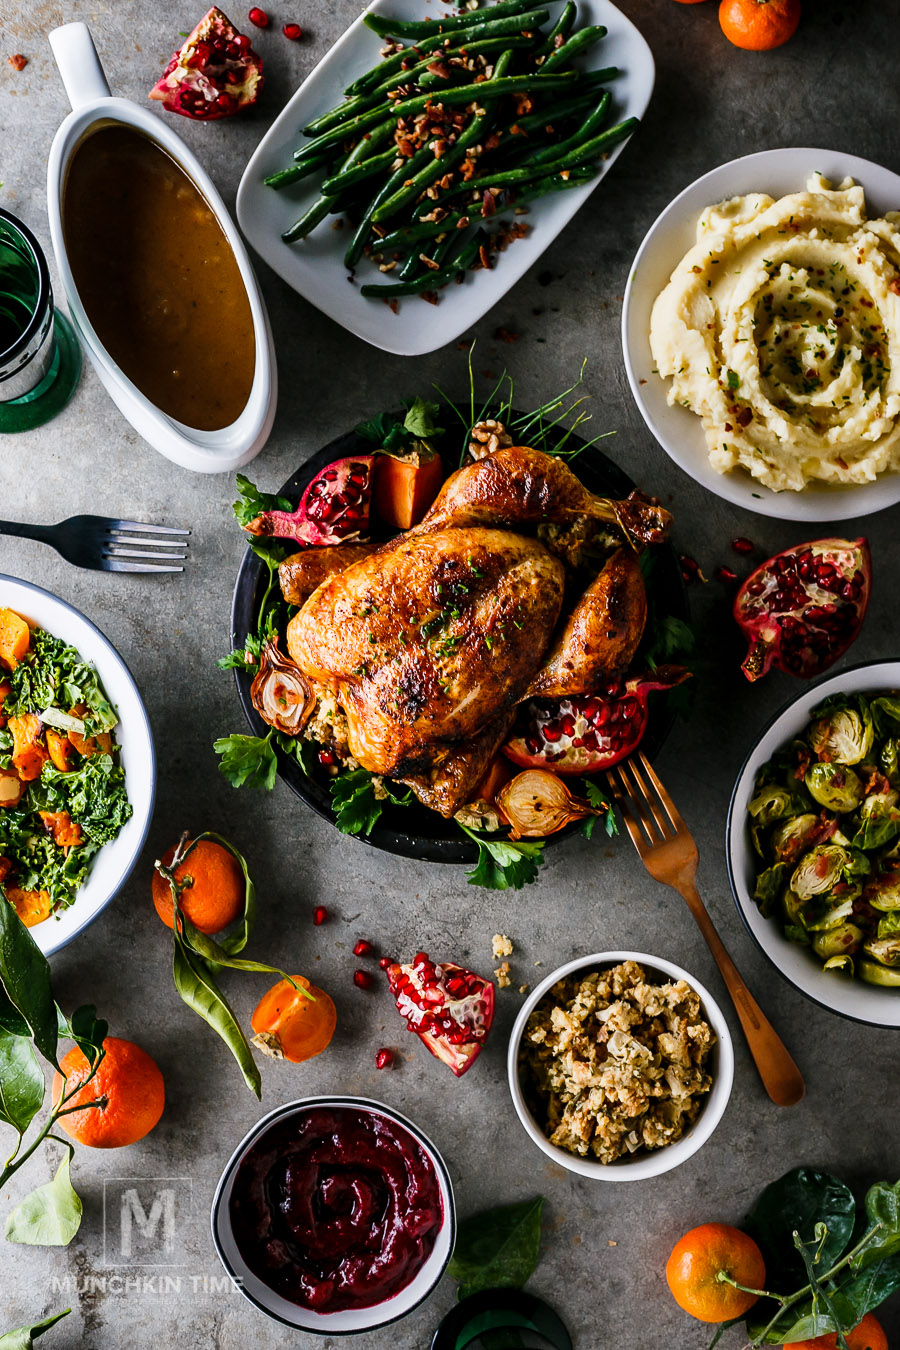 Whole Foods Market Thanksgiving Meal